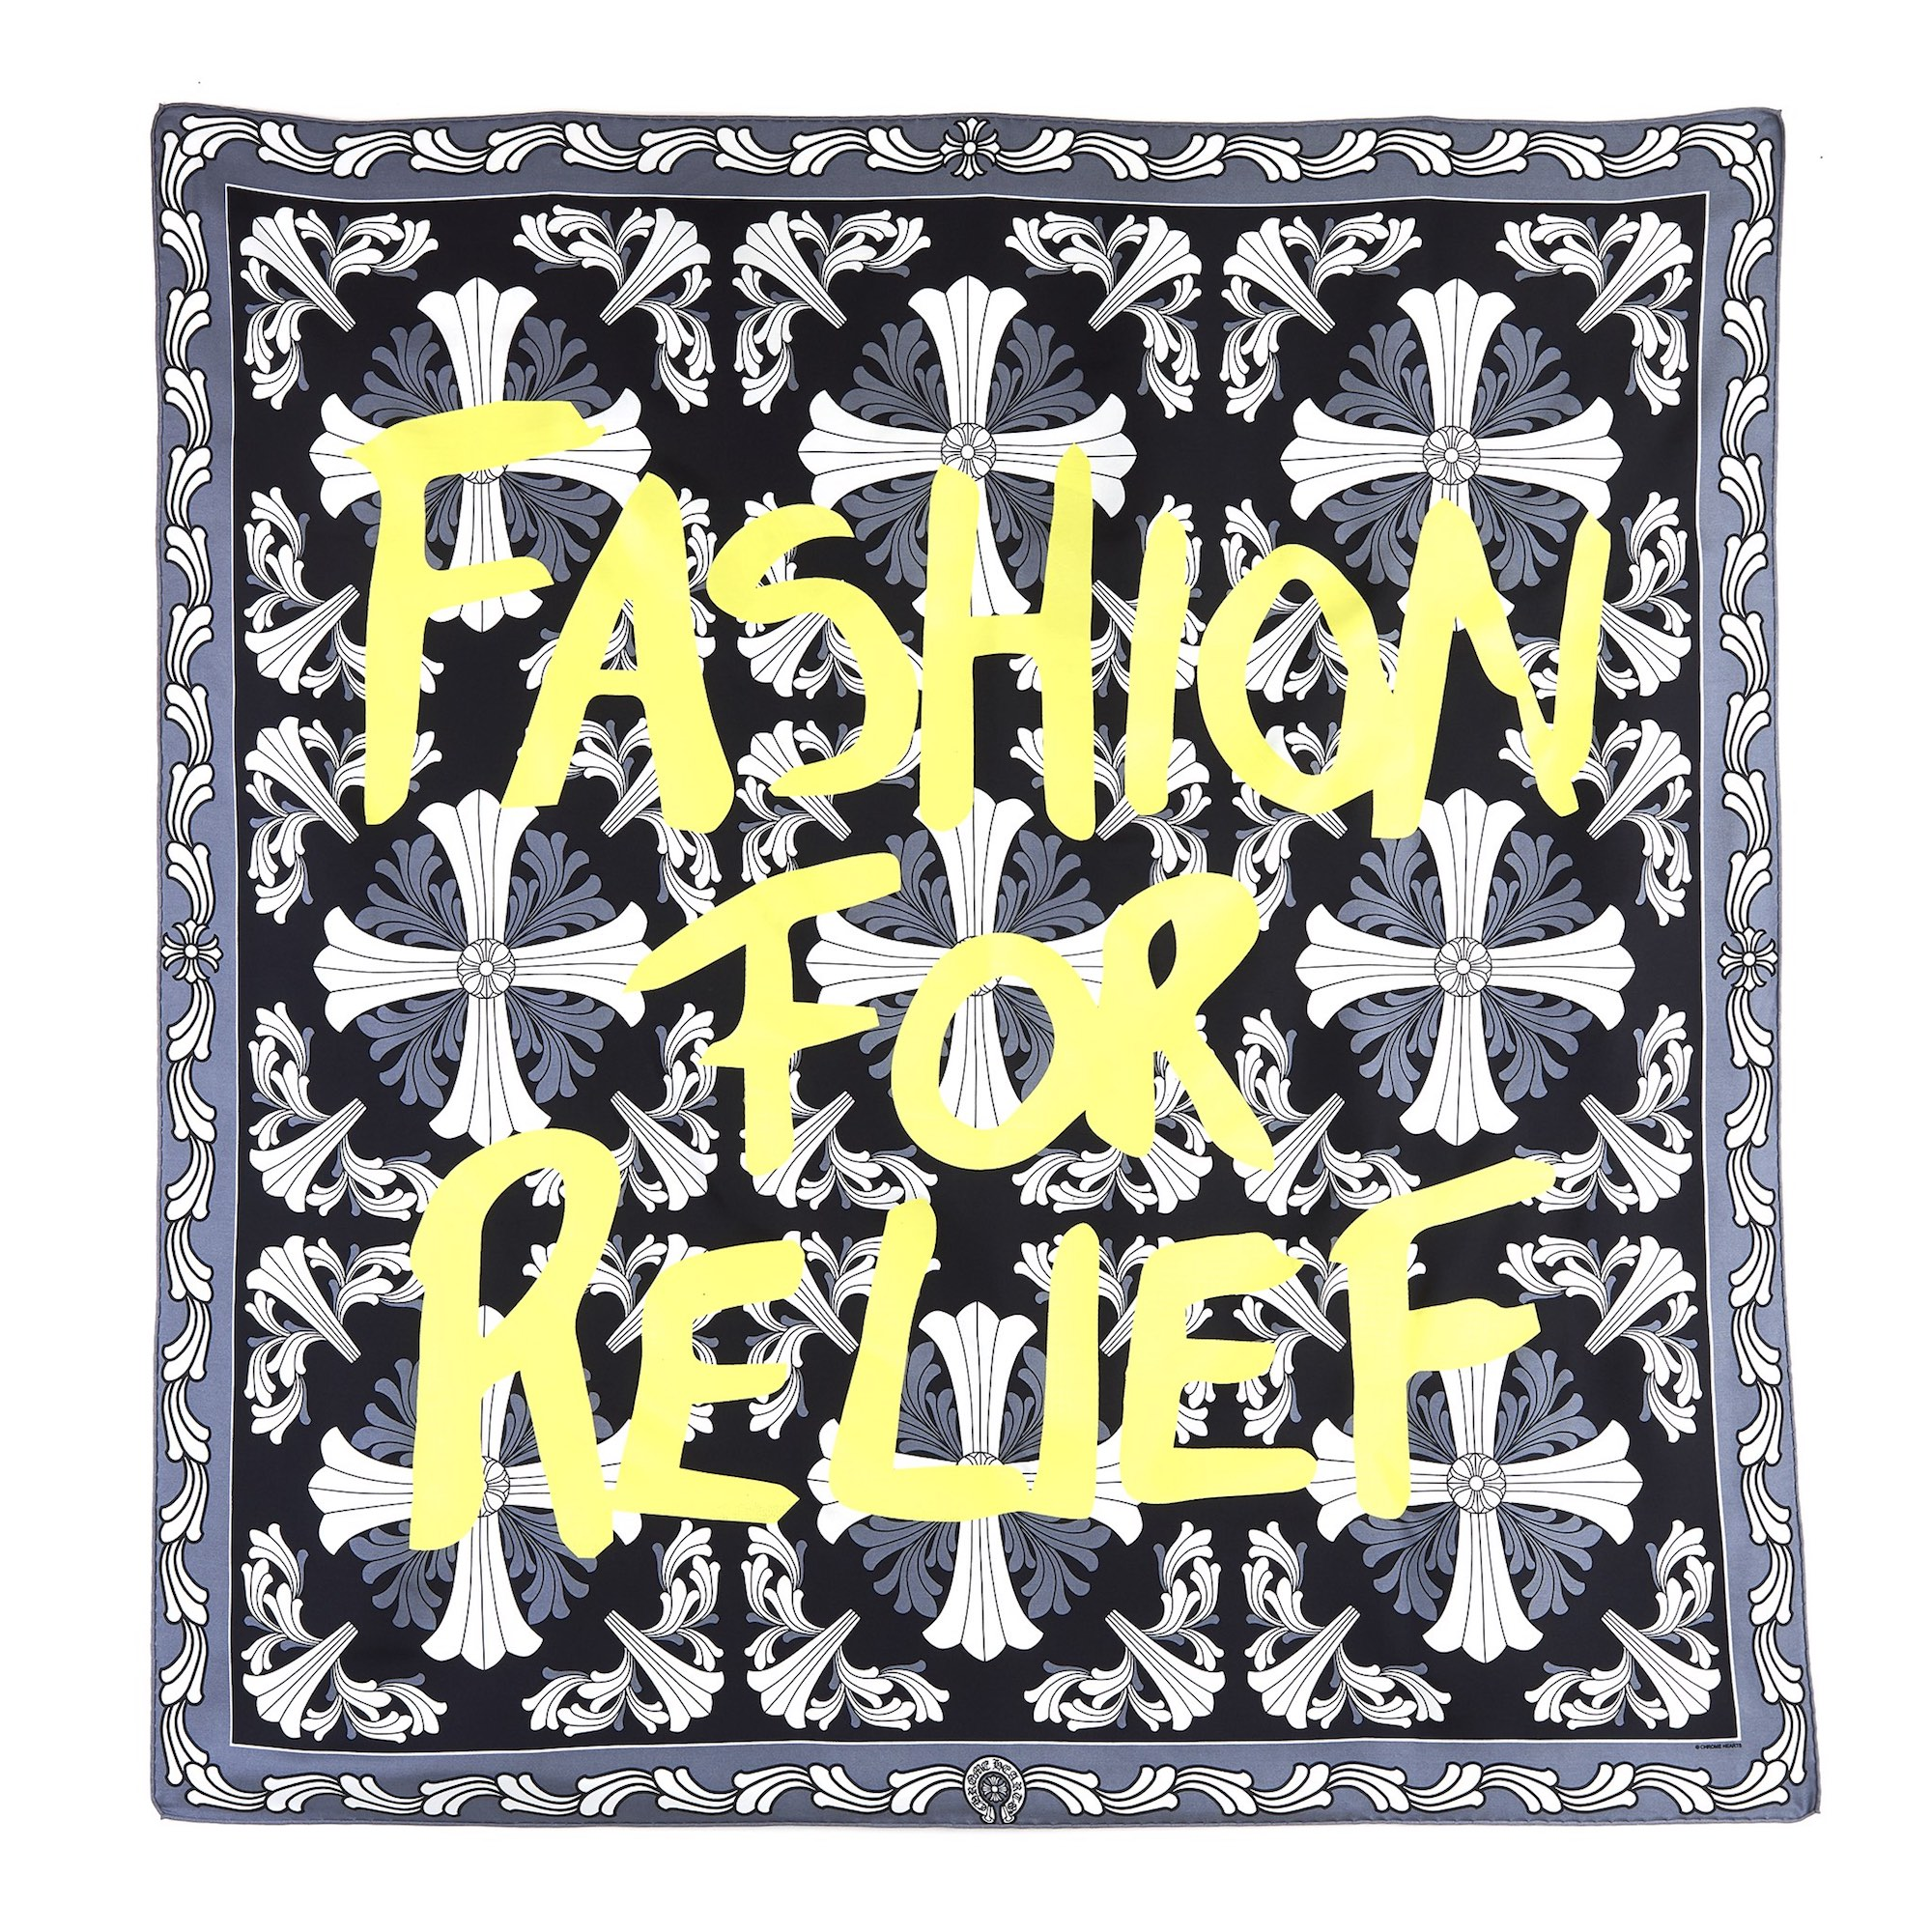 Chrome Hearts have teamed up with Naomi Campbell's Fashion For Relief yellow scarf